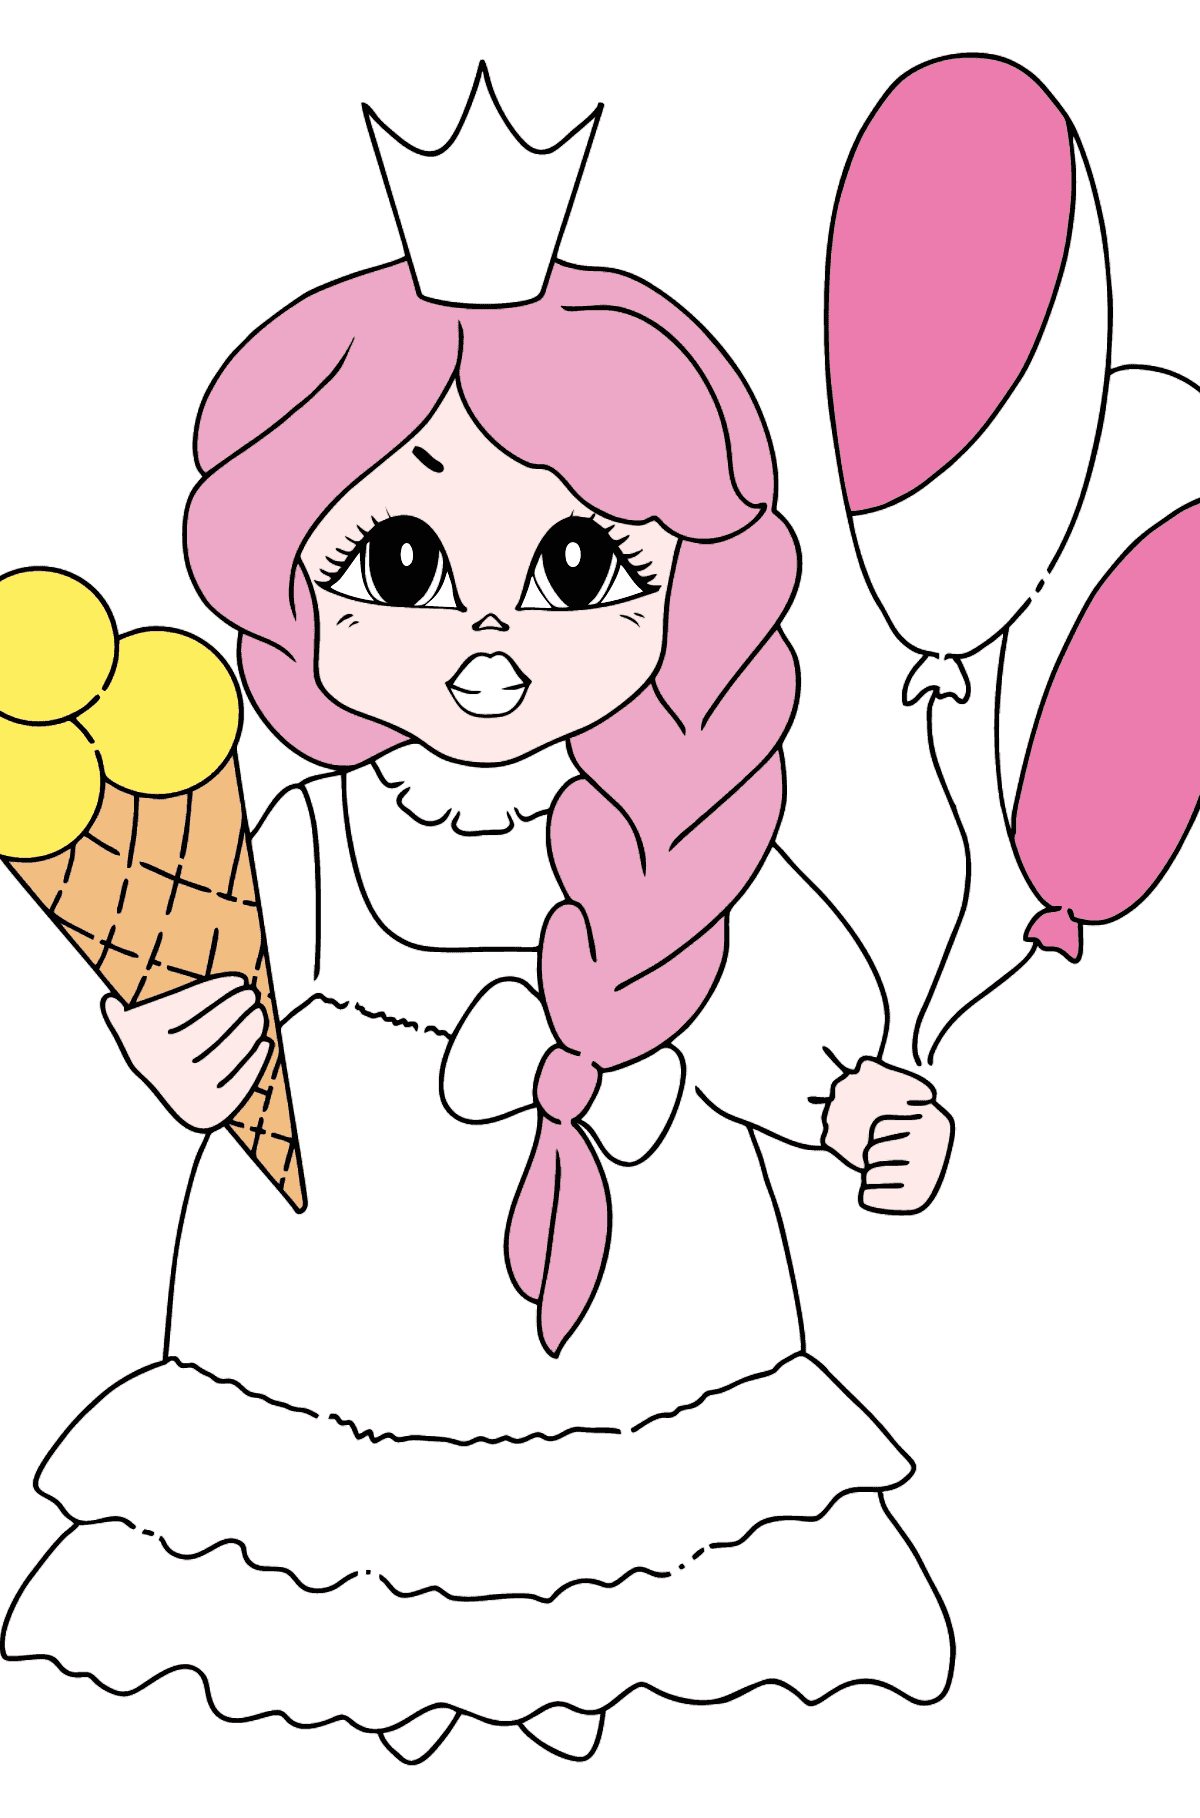 Coloring Picture - A Princess with Ice Сream - Coloring Pages for Kids